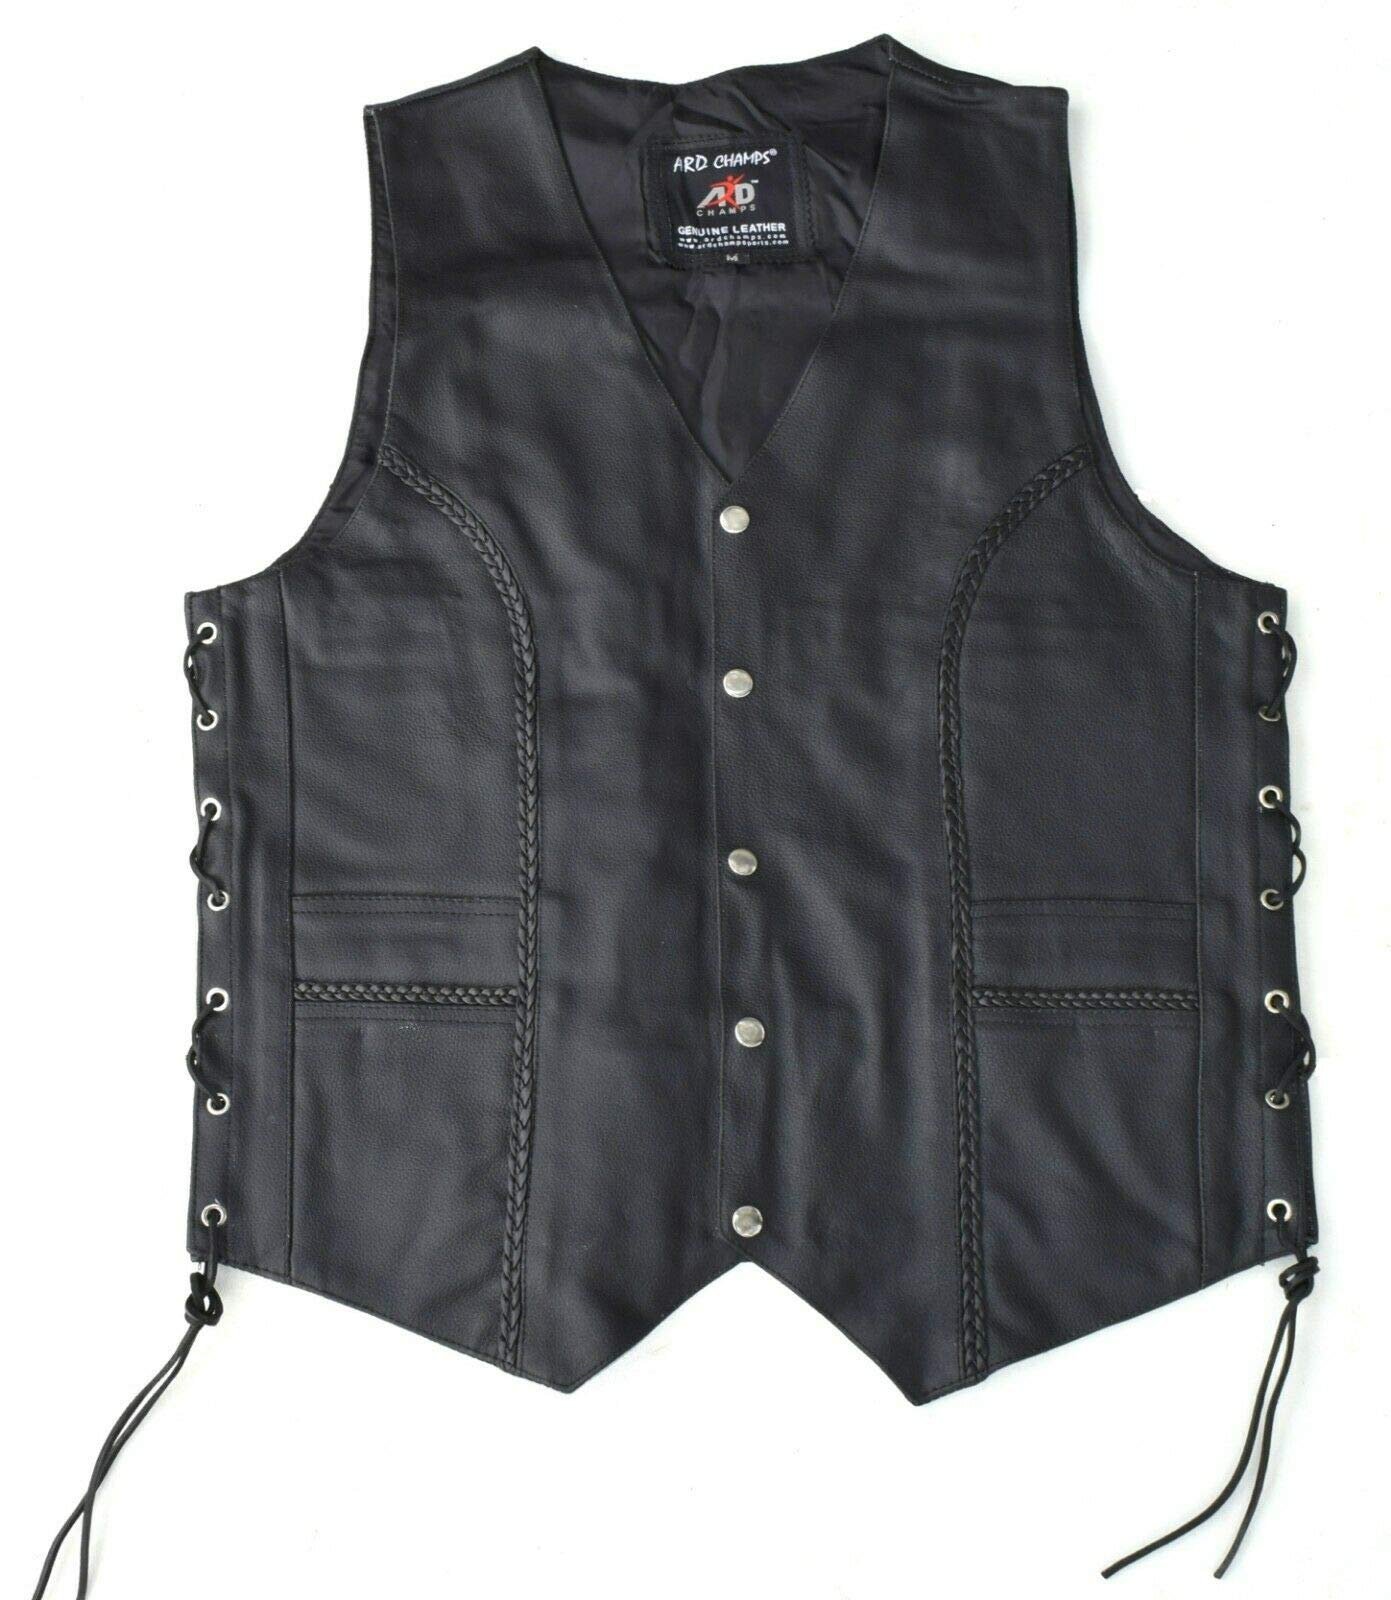 ARD Premium Quality Mens Braided Side Lace Motorcycle Black Leather Vest S-6XL (5X-LARGE)